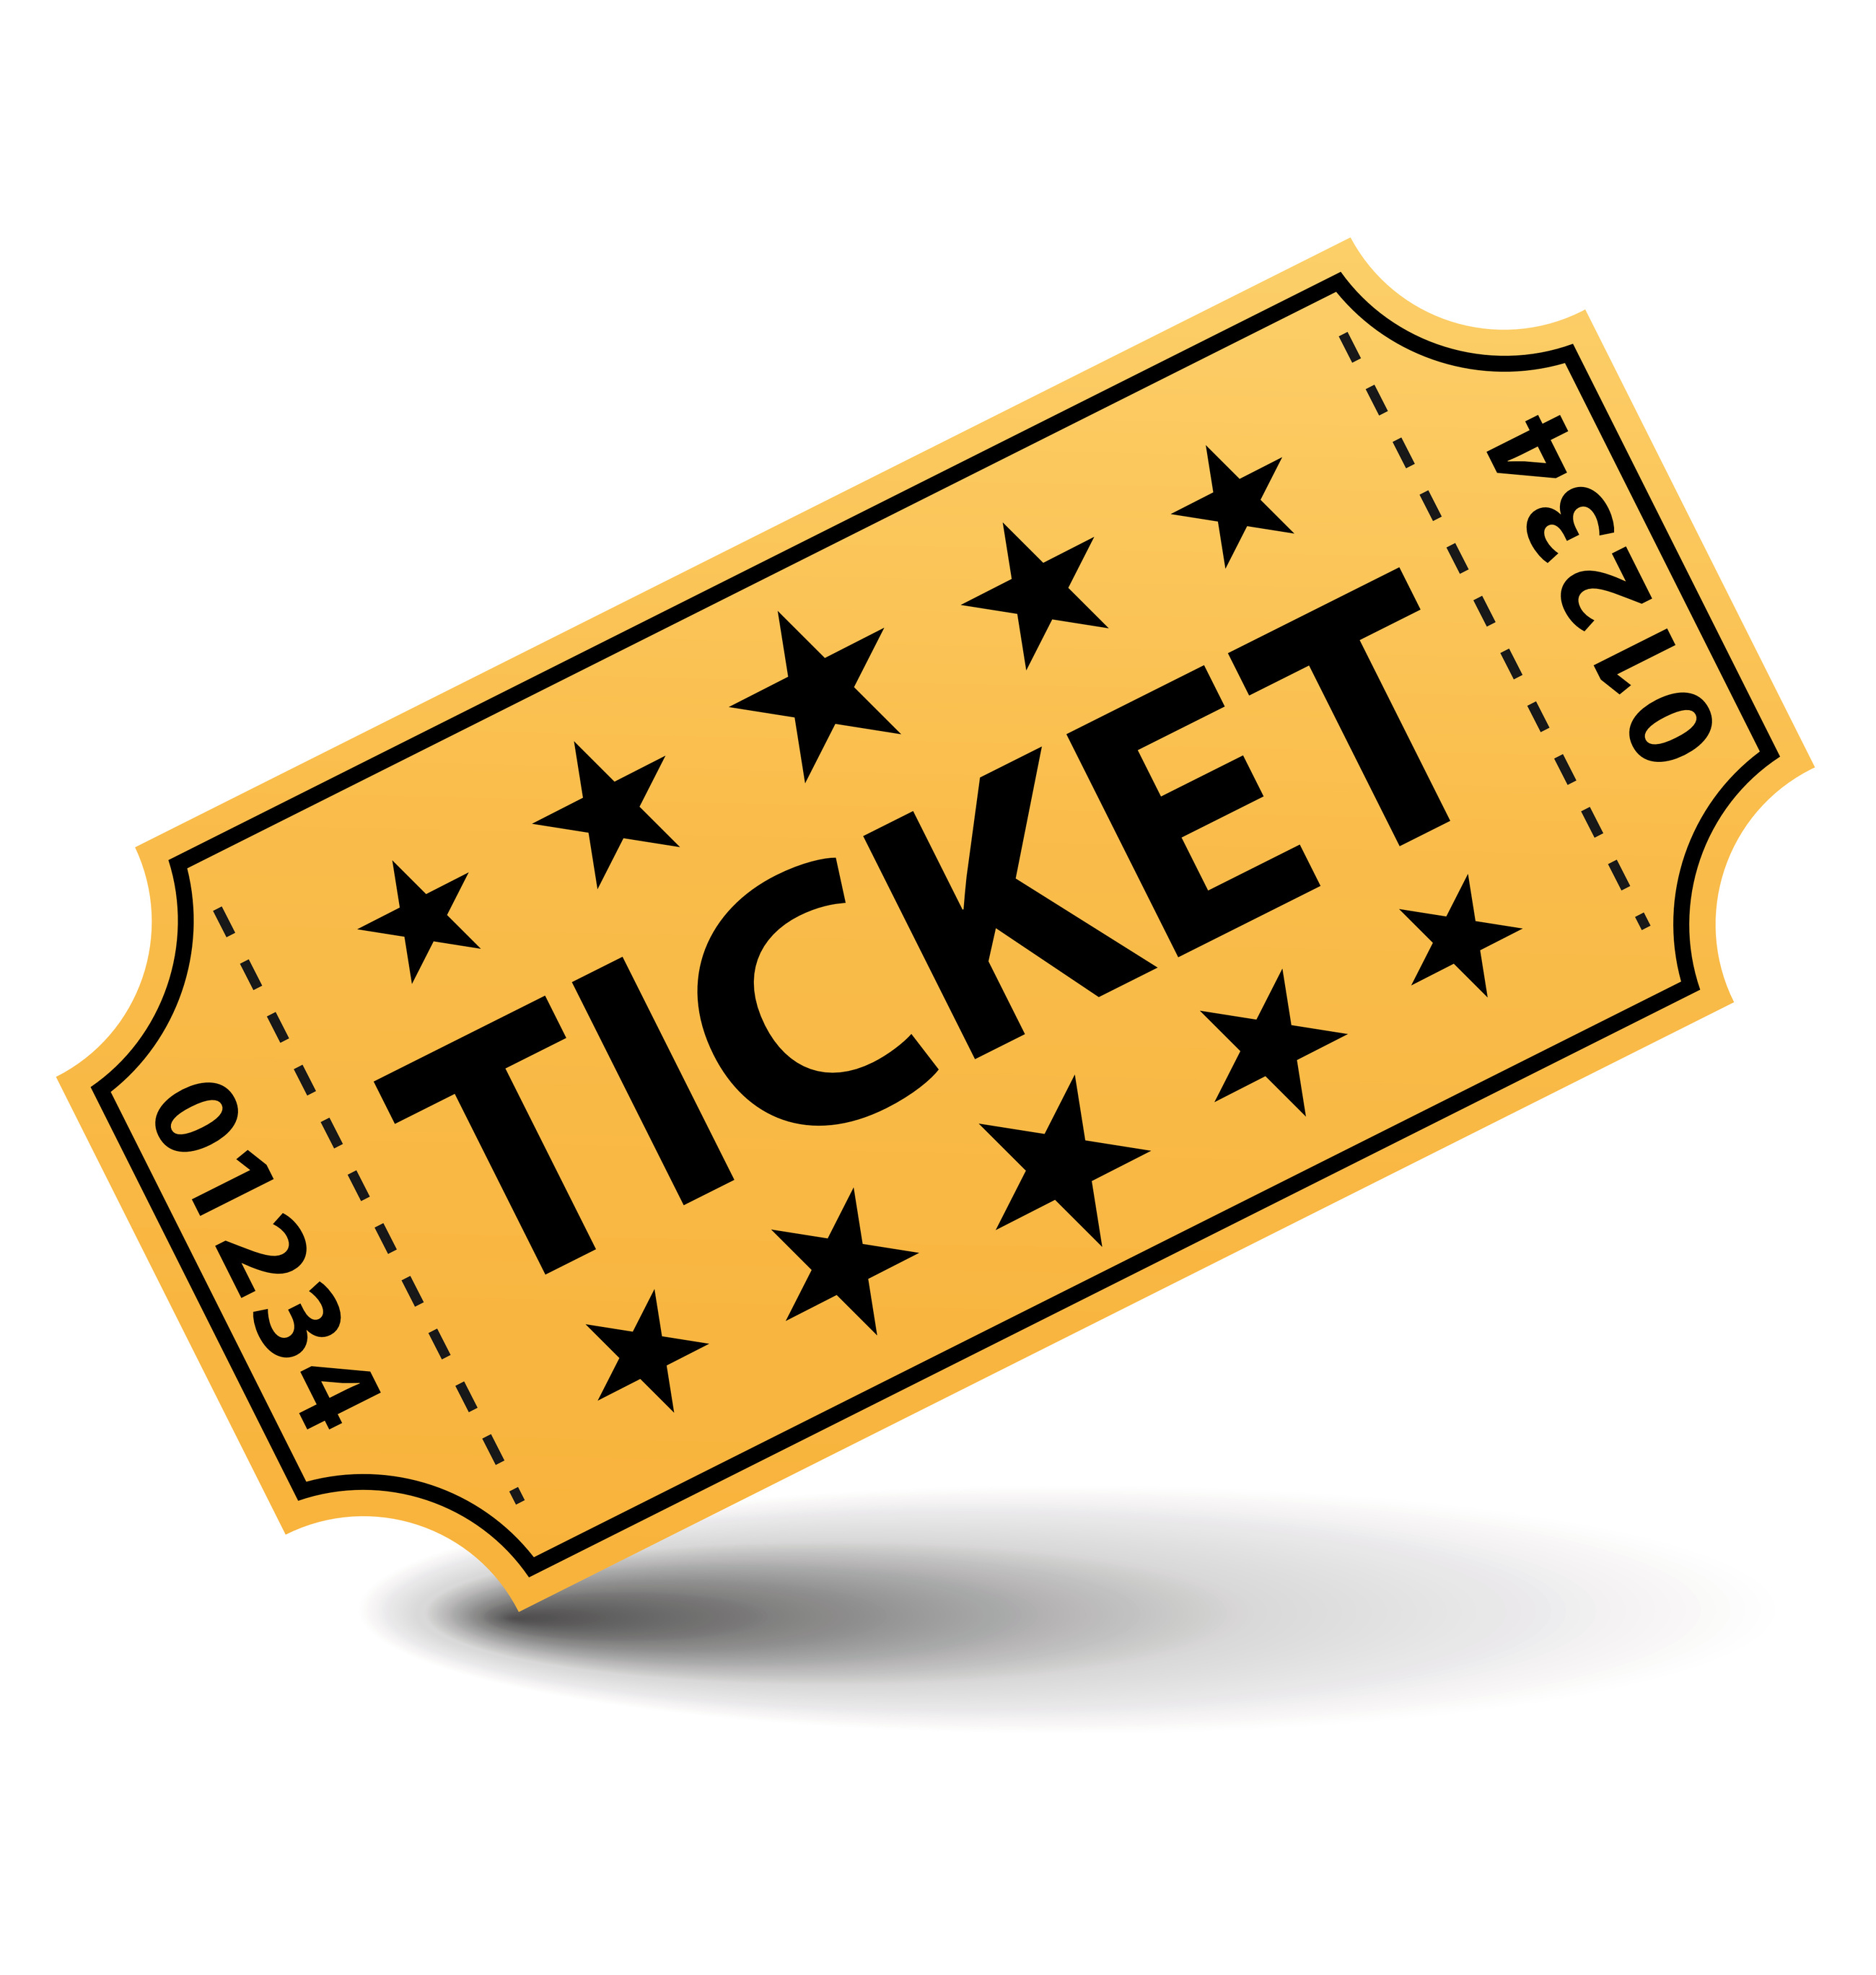 Ticket Clipart Buy Raffle Tickets There Are 5 Great Baskets To Choose From This Year